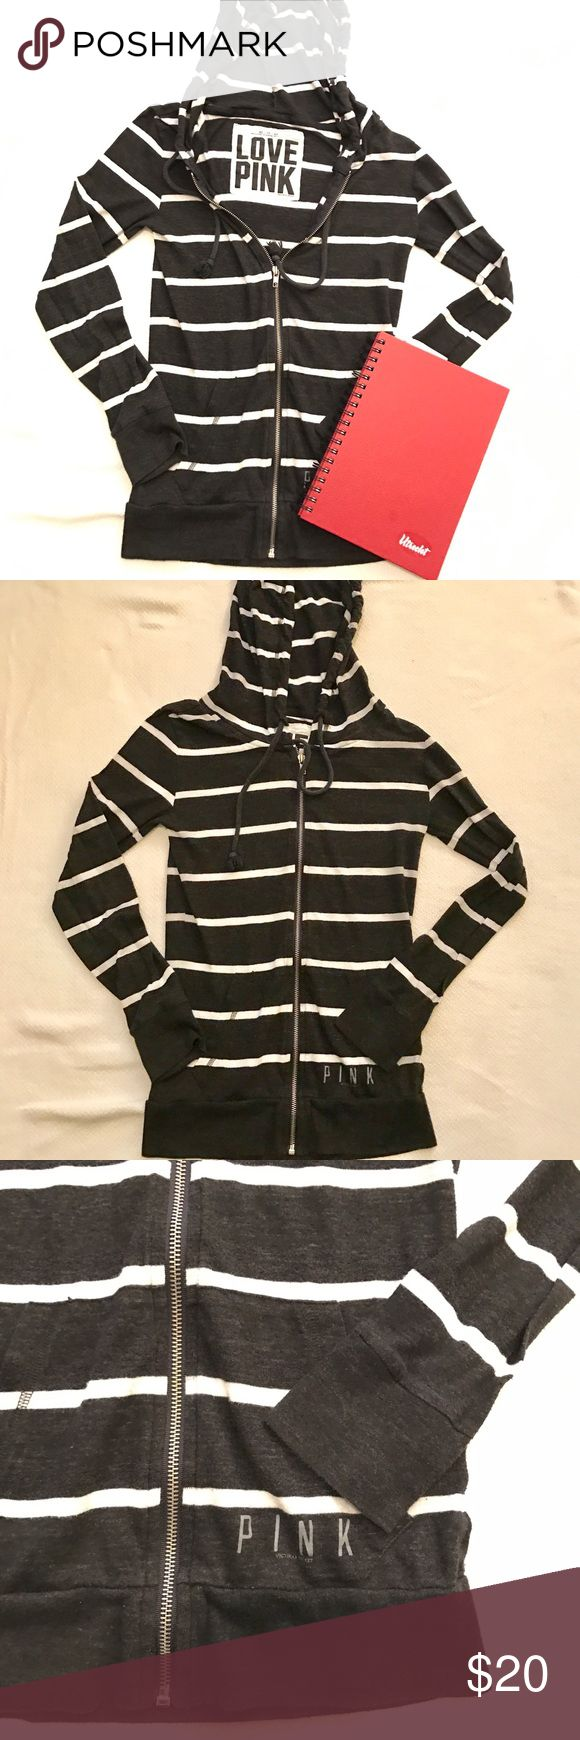 PINK Victoria secret striped zip up hoodie Black and white zip up hoodie in size XS.  Light weight sweater.  Tiny bleach spot on the back.  Please see last two pictures. PINK Victoria's Secret Sweaters